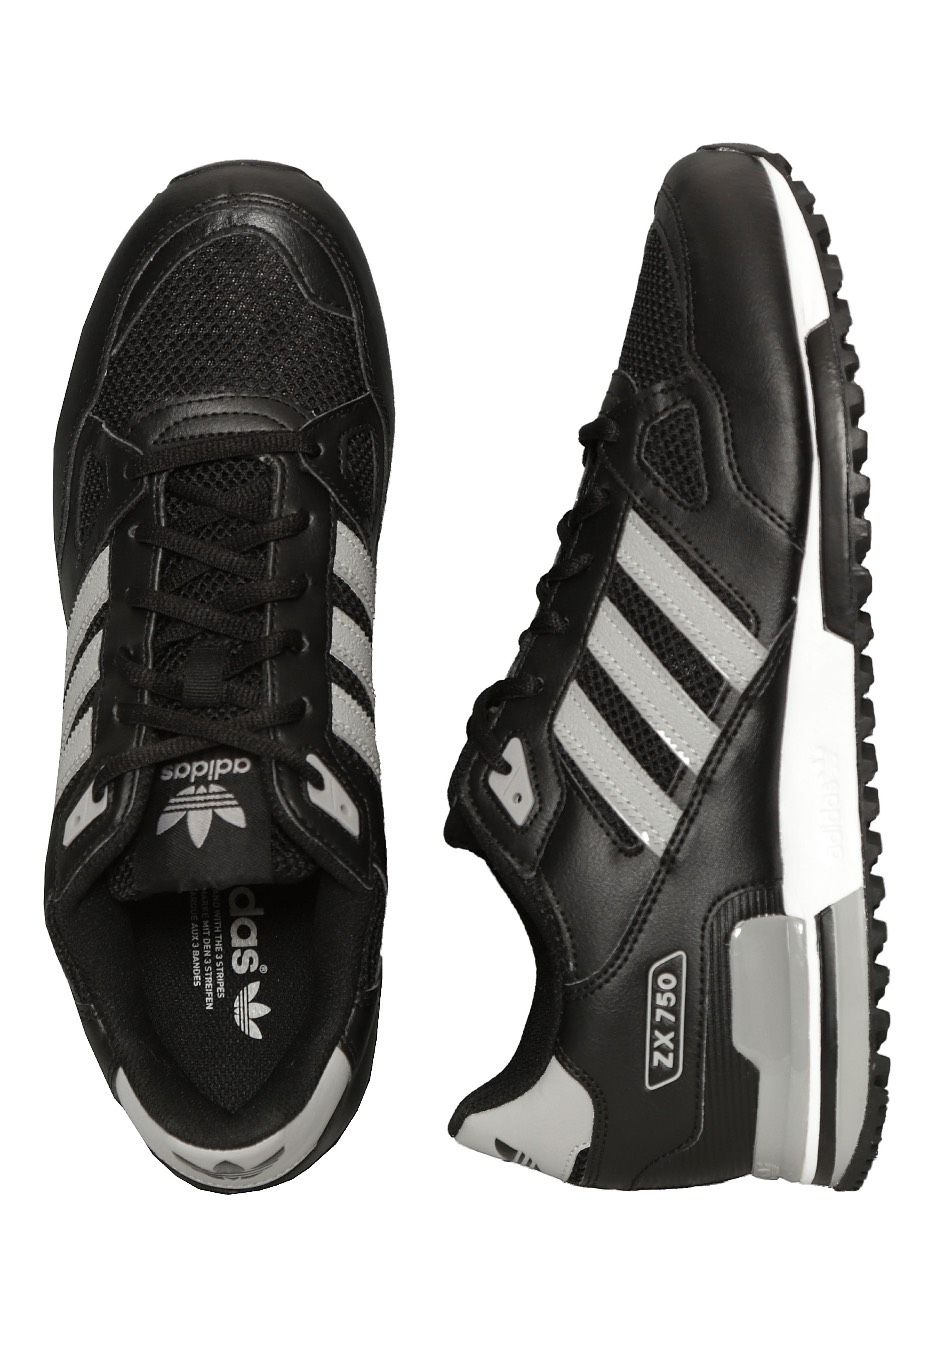 reputable site a1aec 2cdbc Adidas - ZX 750 Core Black MGH Solid Grey MGH Solid Grey - Shoes -  Impericon.com UK